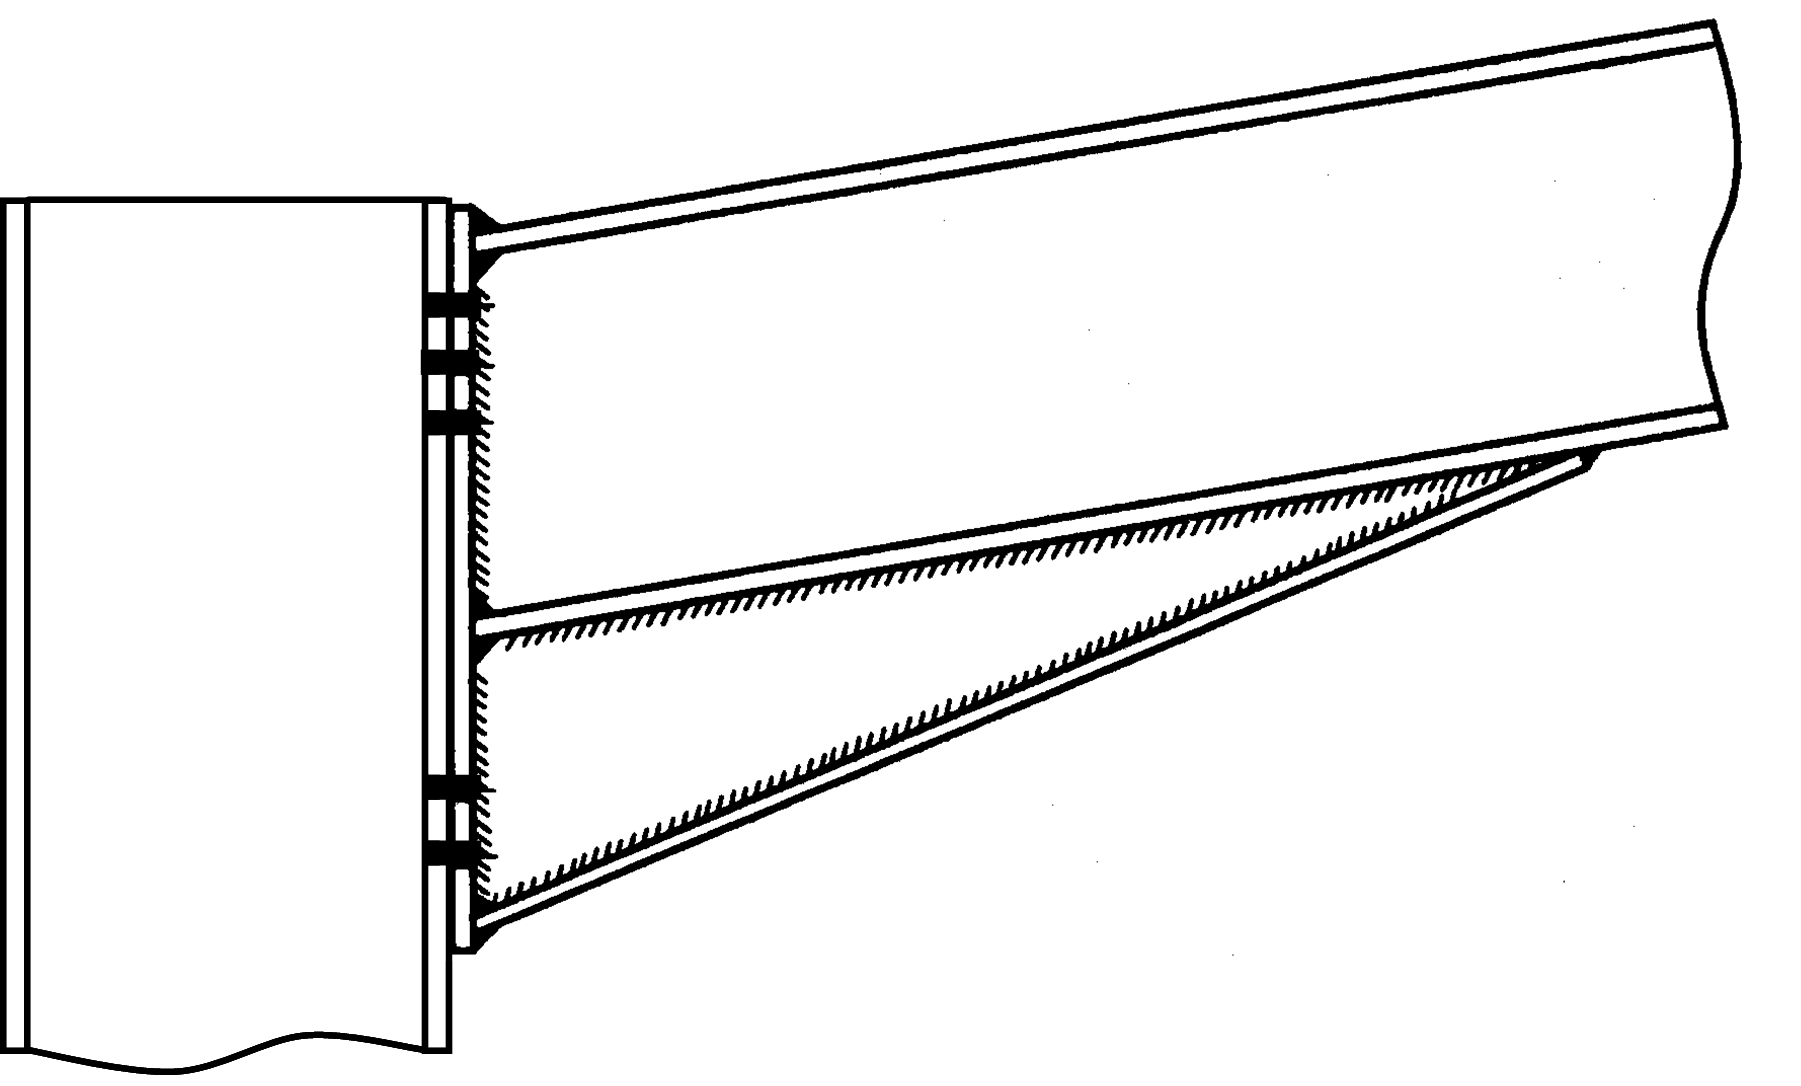 Bending Moment Shear And Normal Diagrams Haunched Beam